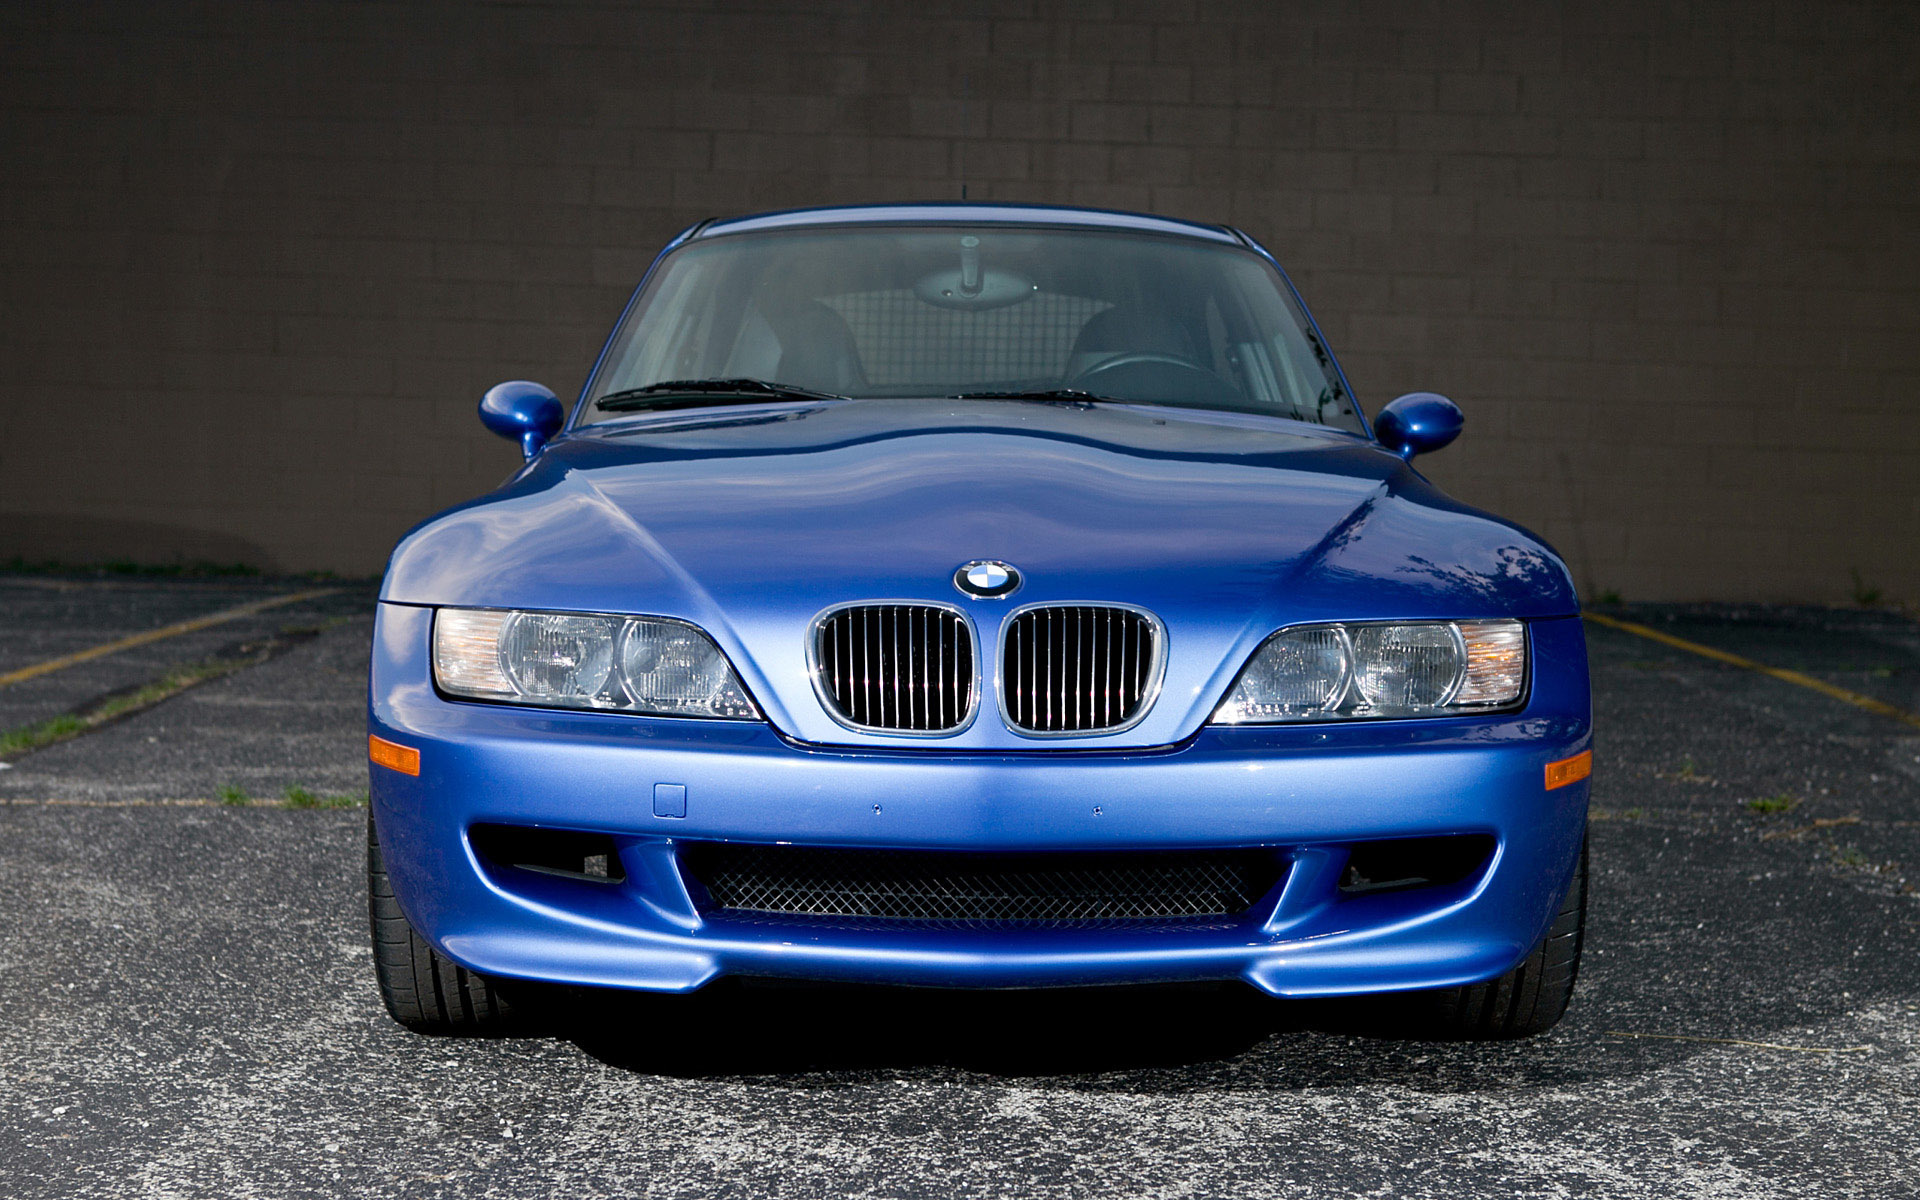 bmw z3 car hd wallpaper hd latest wallpapers. Black Bedroom Furniture Sets. Home Design Ideas